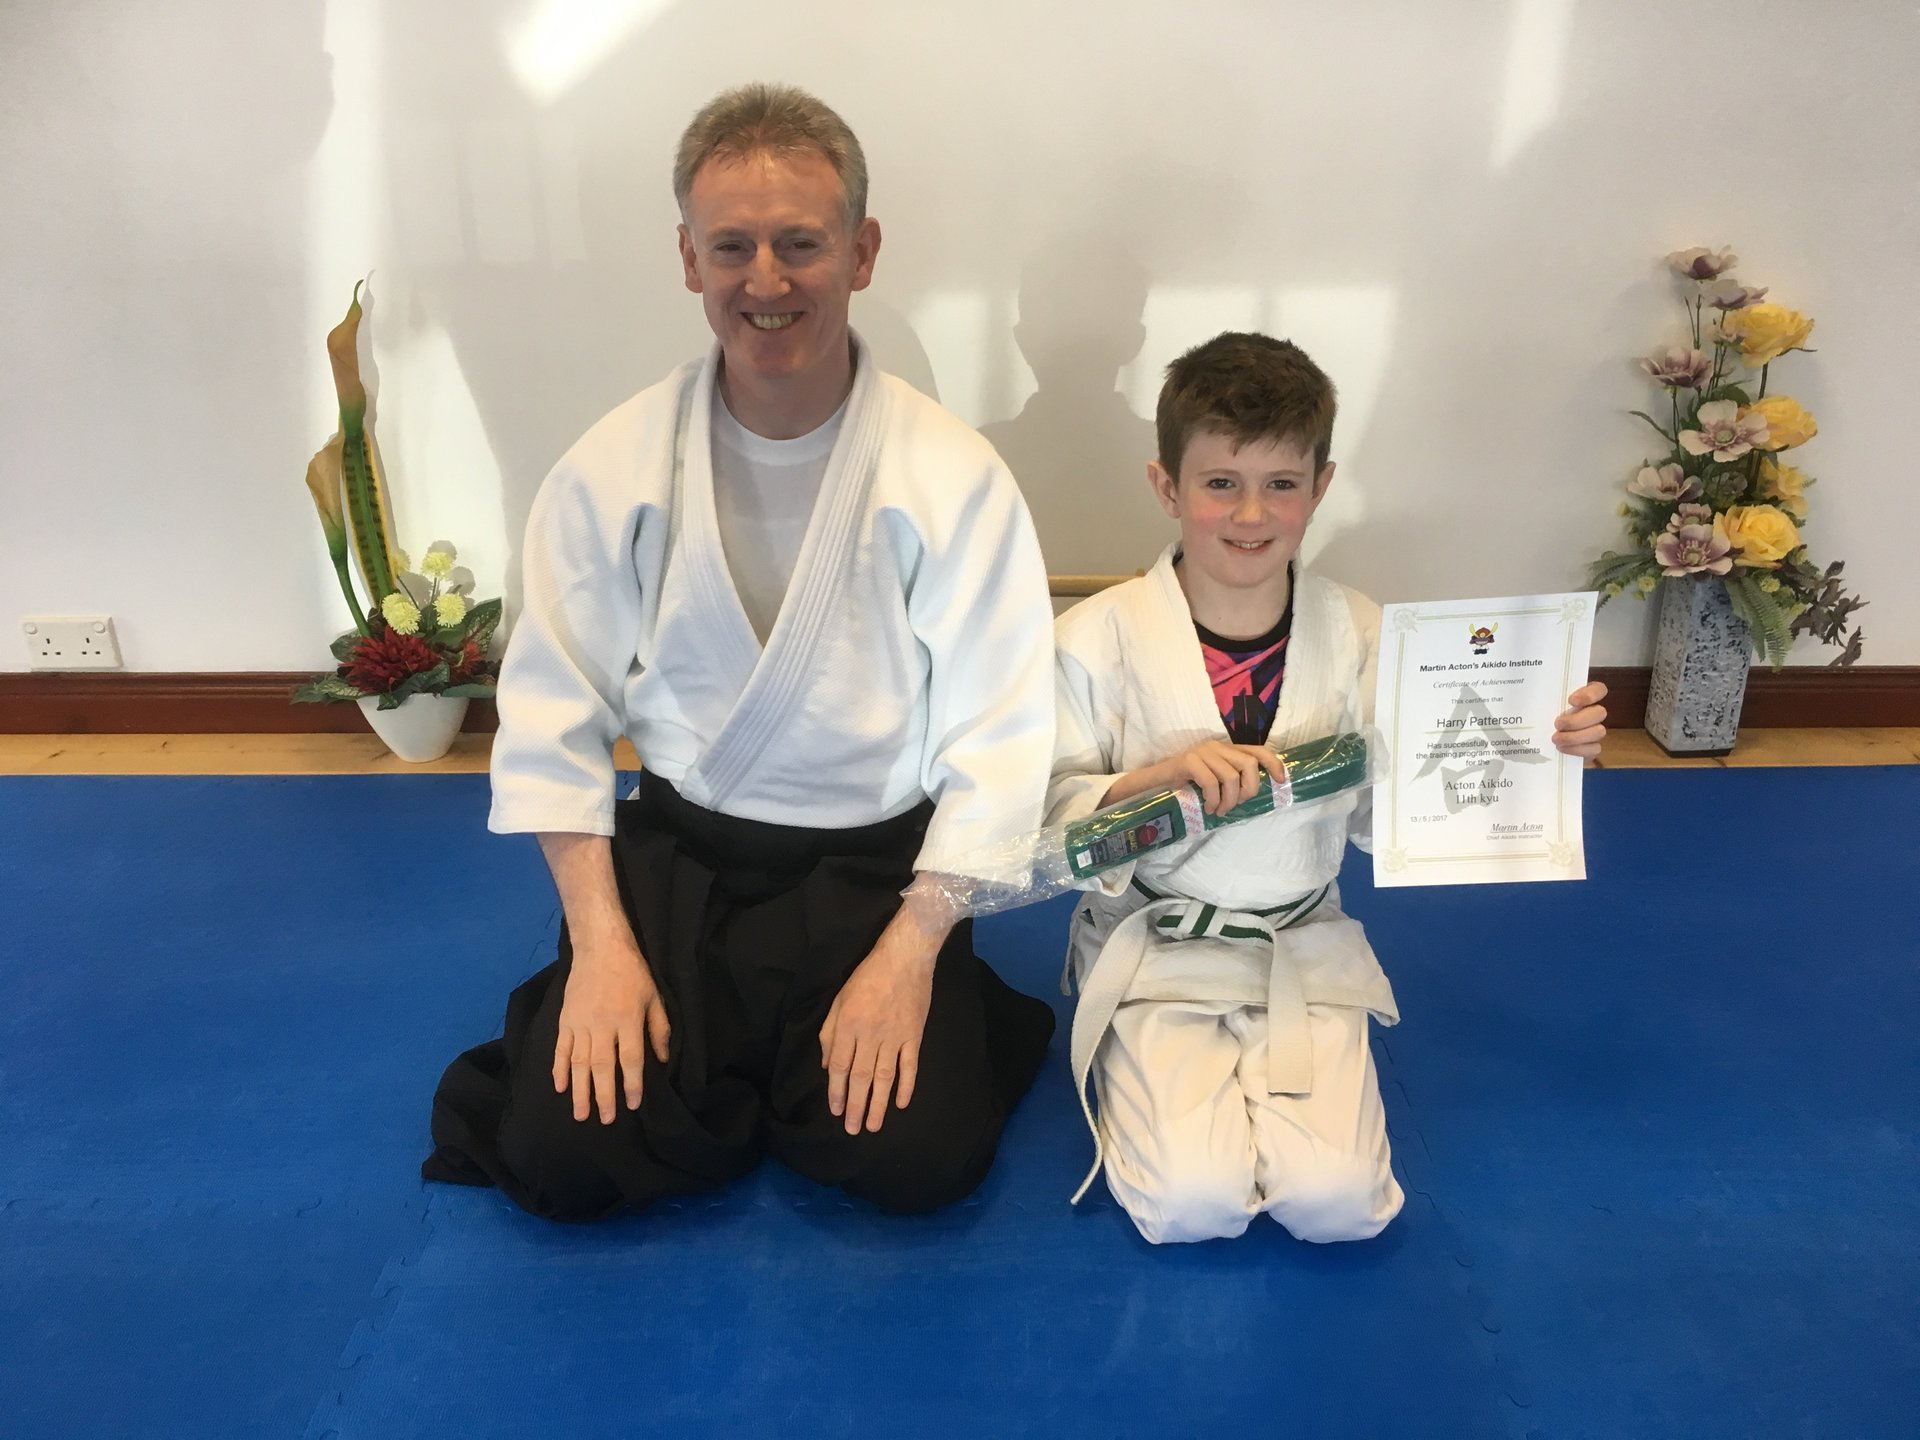 Harry Patterson receiving his Aikido 11th kyu grading on the 13/5/2017 at Martin Acton's Aikido Institute